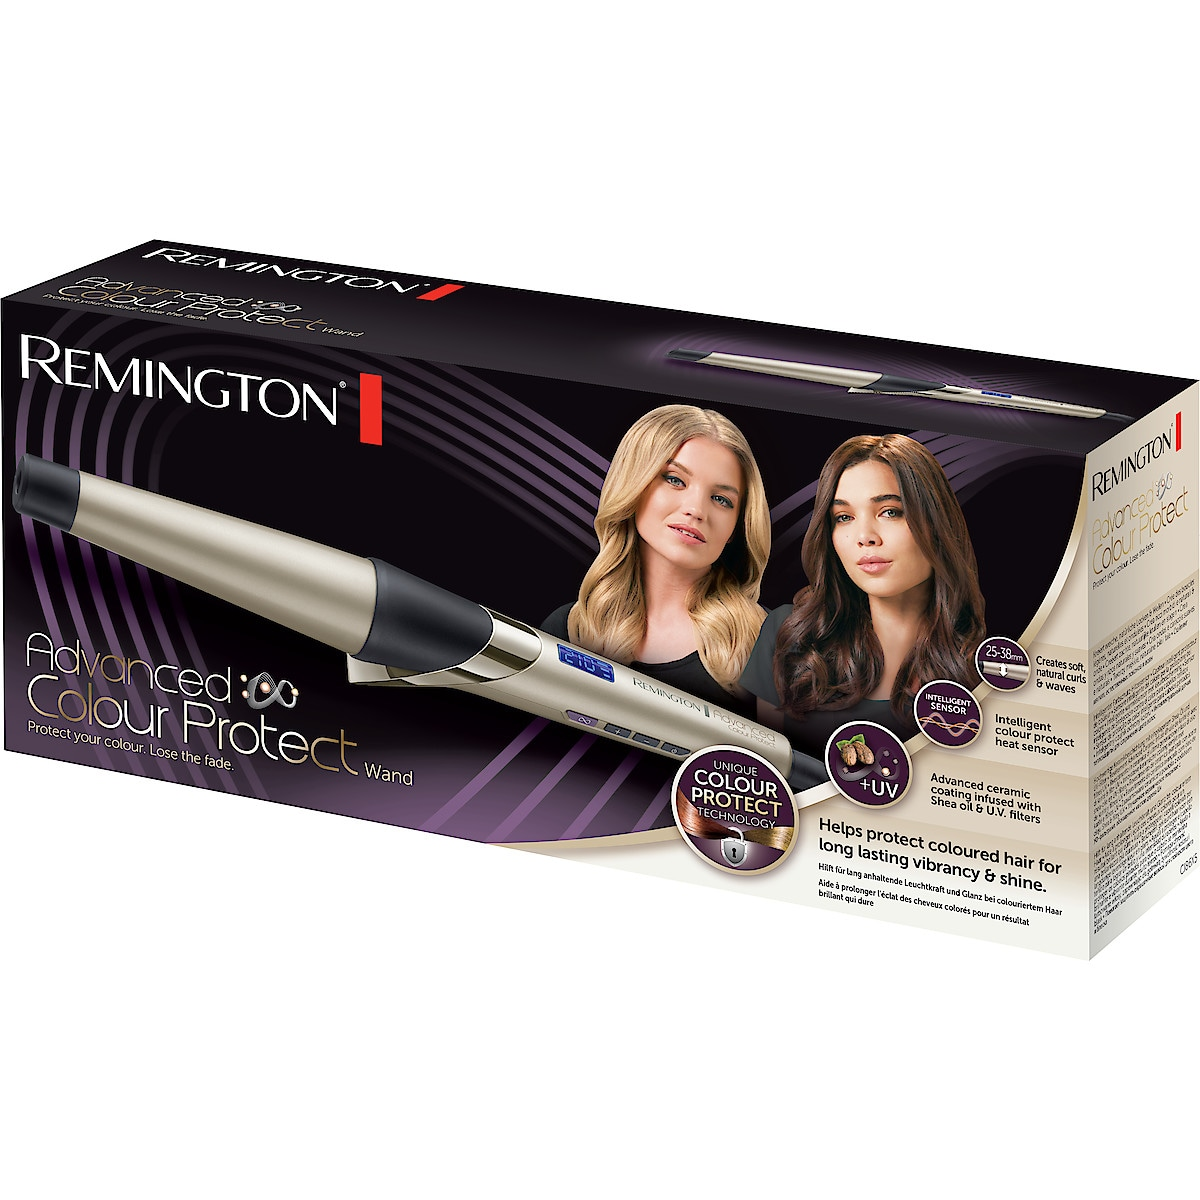 Locktång Remington Advanced Colour Protect Wand CI86X5